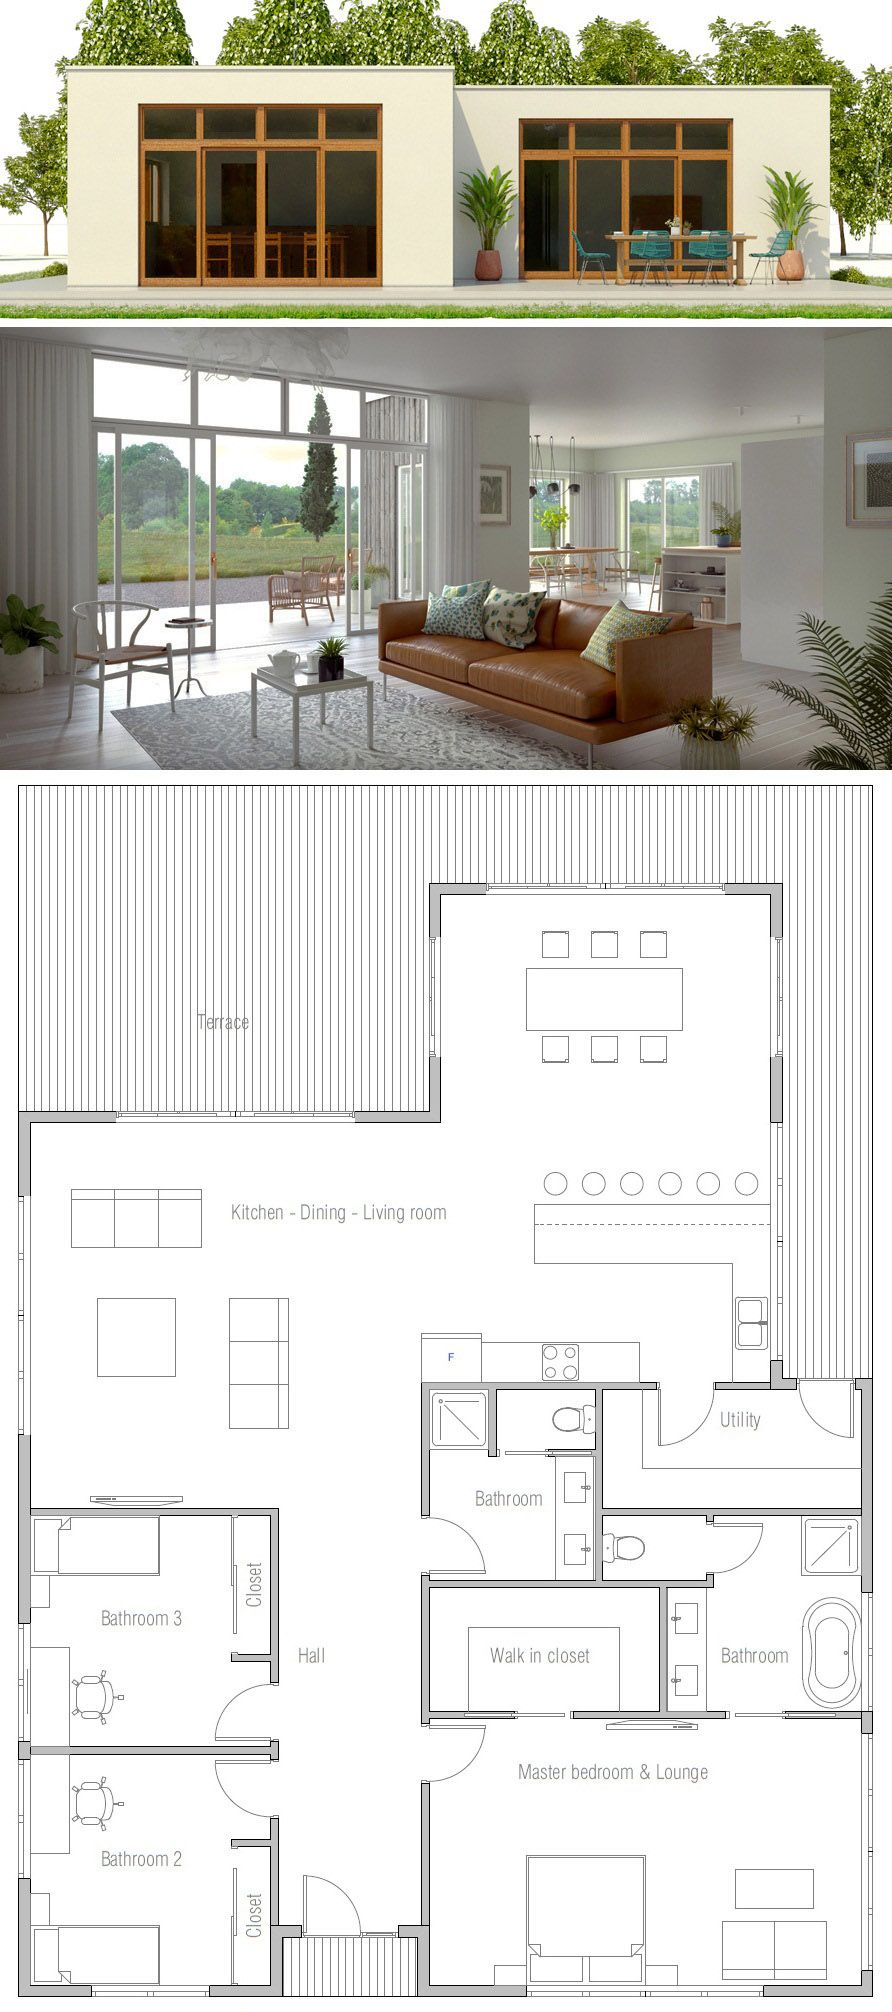 Minimalist House Designs Contemporary House Plans House Plans Small House Plans